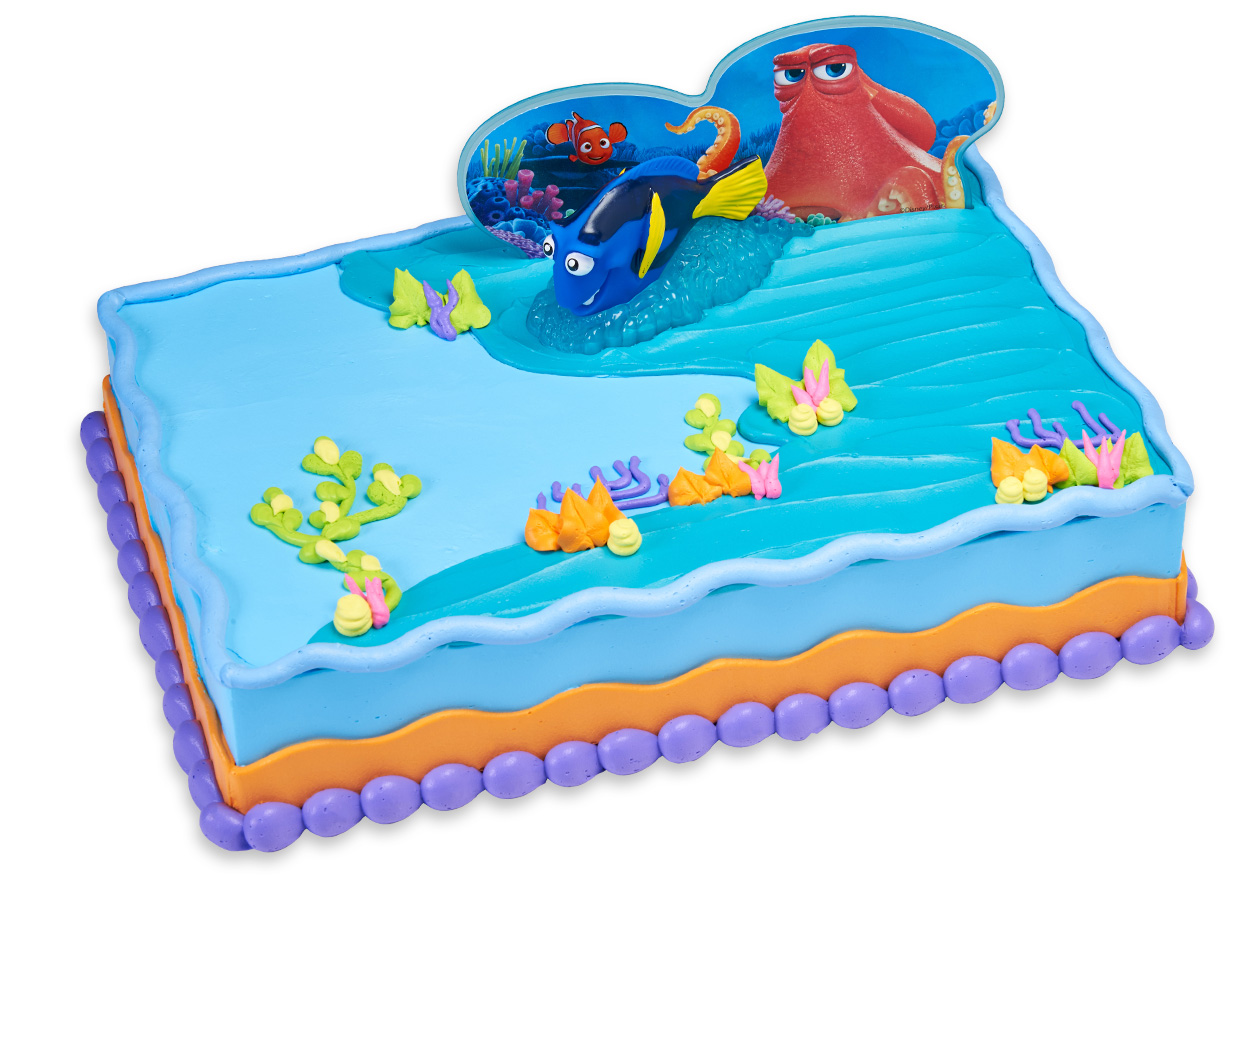 Order A Kids Birthday Cake At Cold Stone Creamery